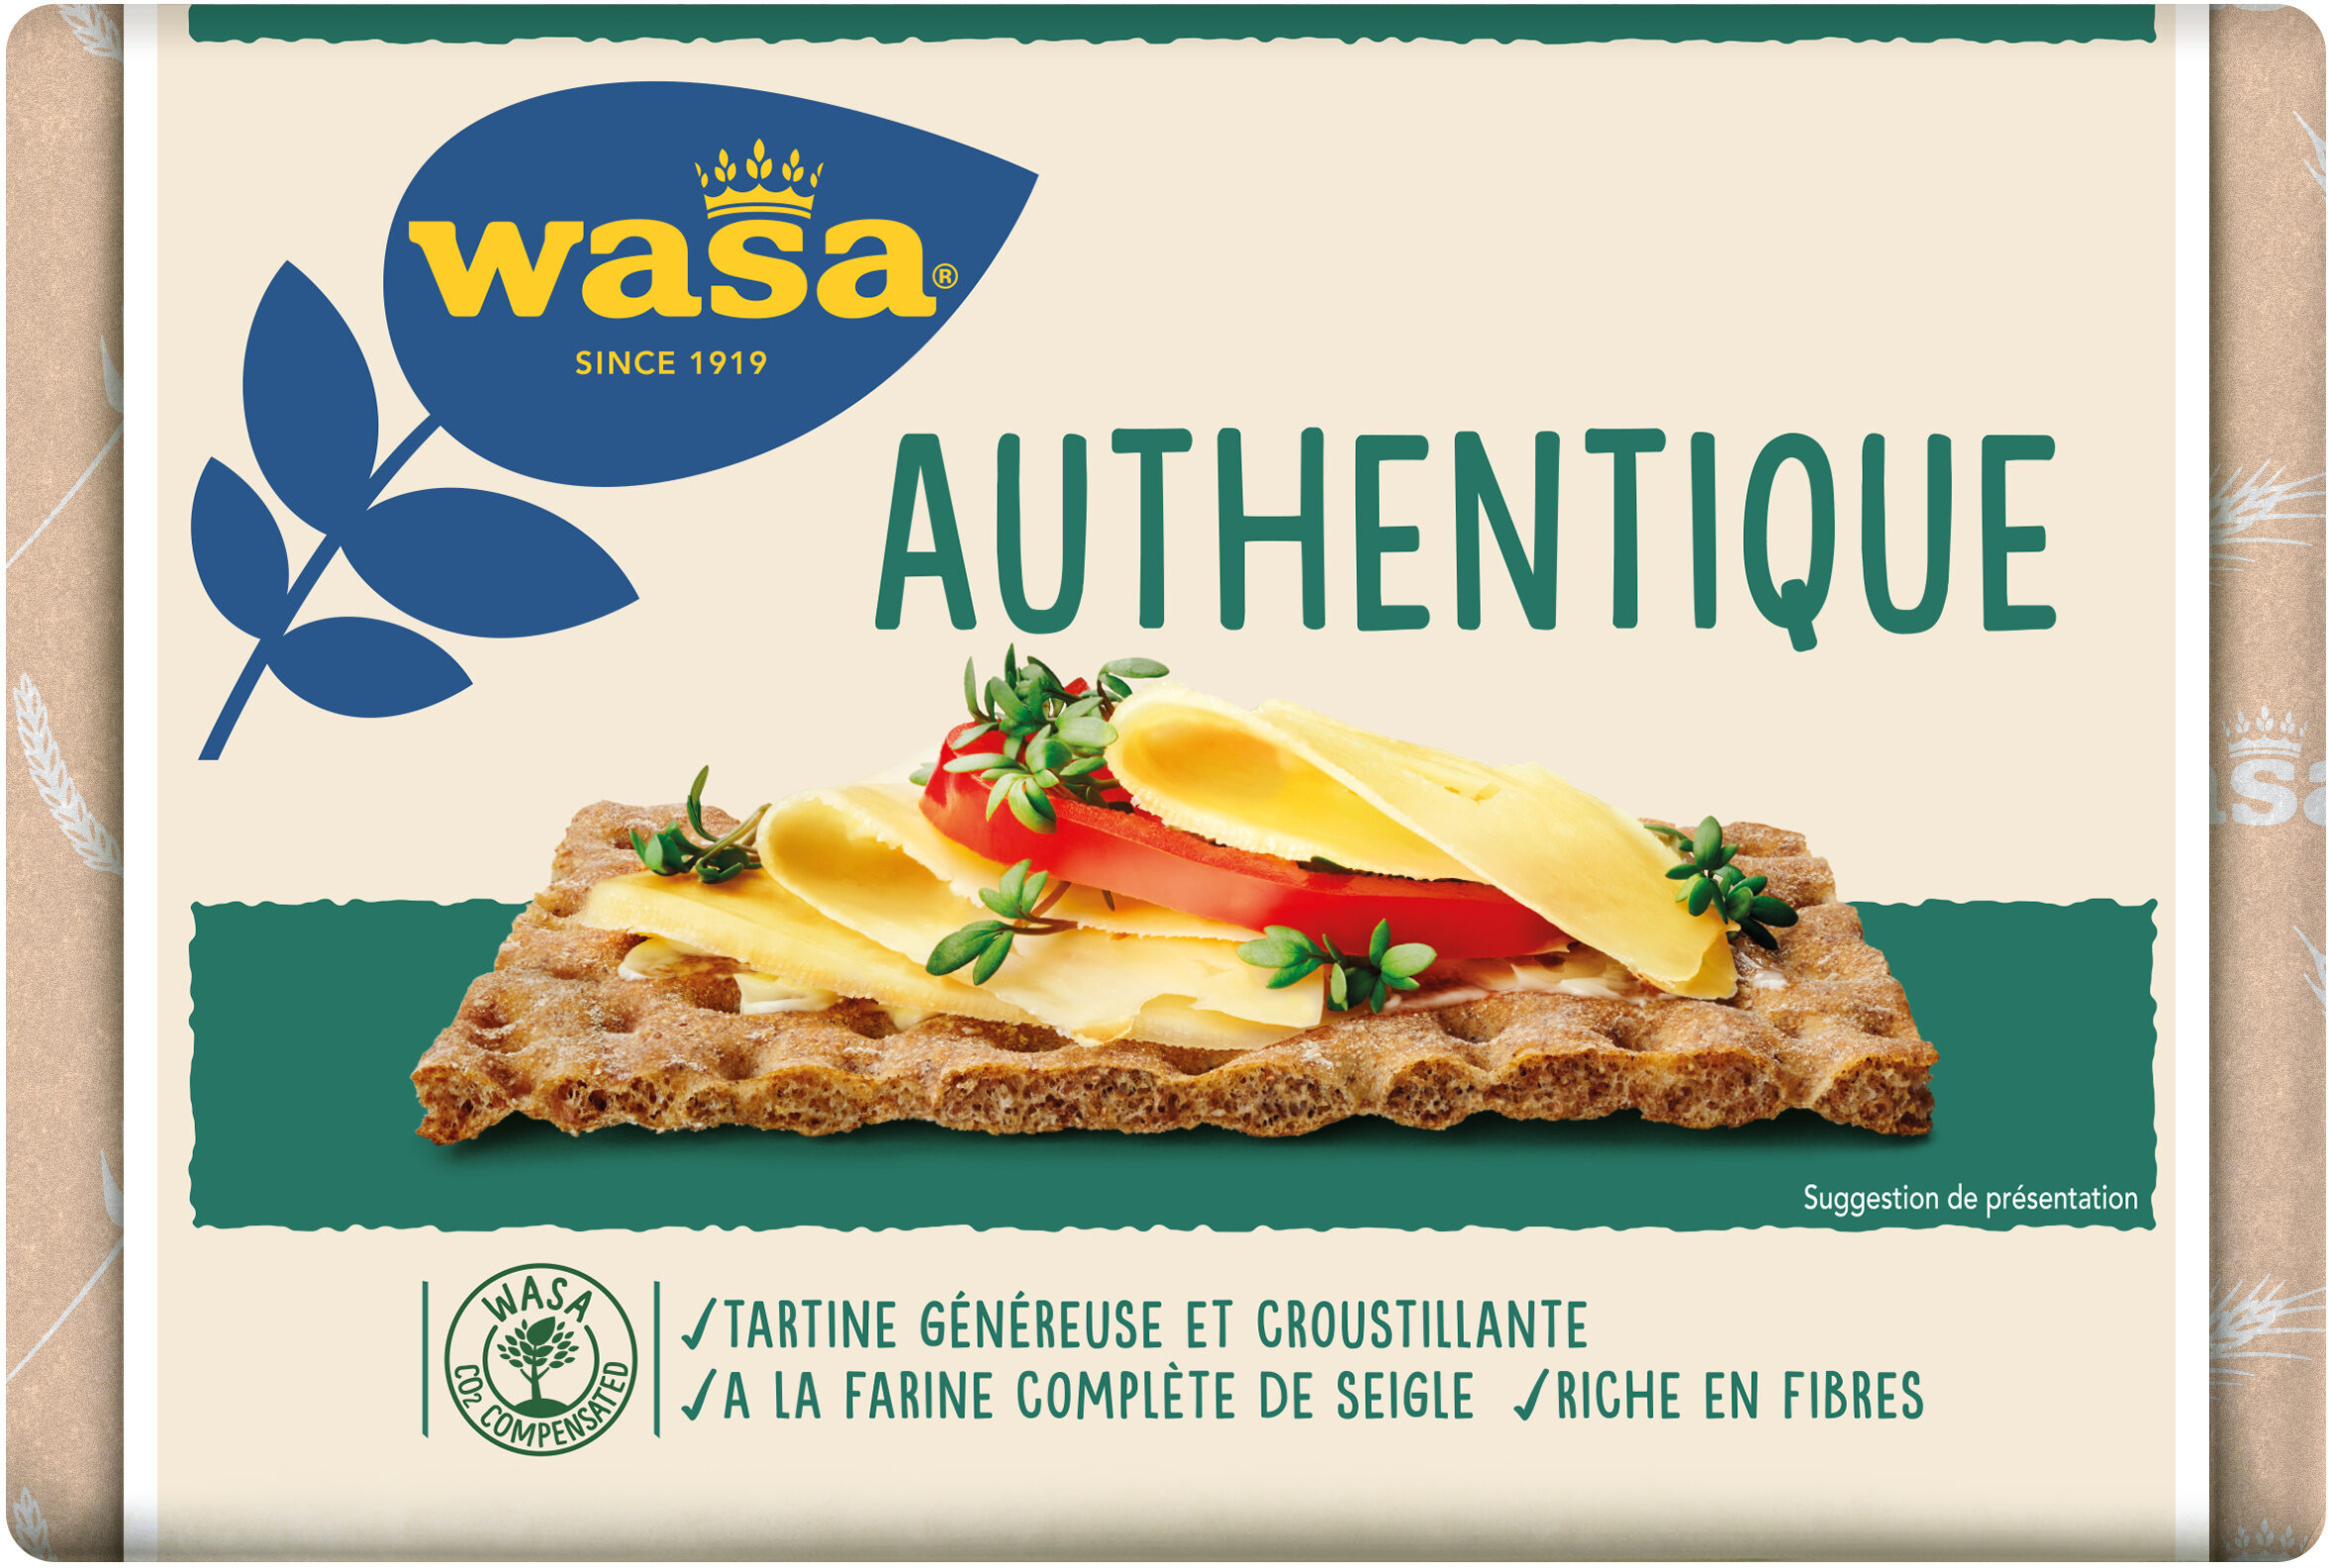 Wasa tartine croustillante authentique - Product - fr